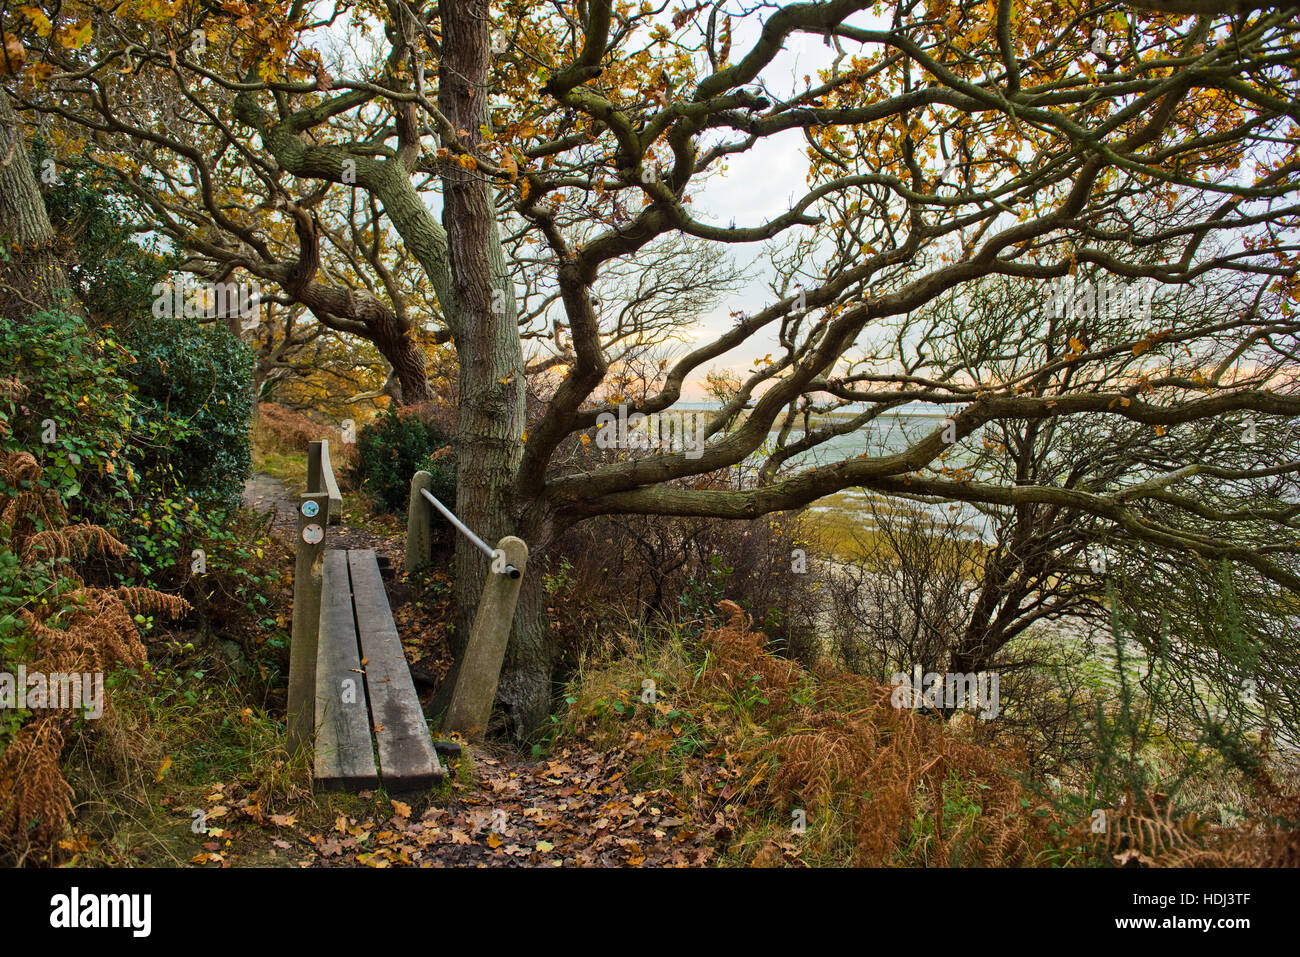 Footpath, wooden bridge and stunted oaks trees in autumn on a footpath from Itchenor along the Chichester Channel - Stock Image